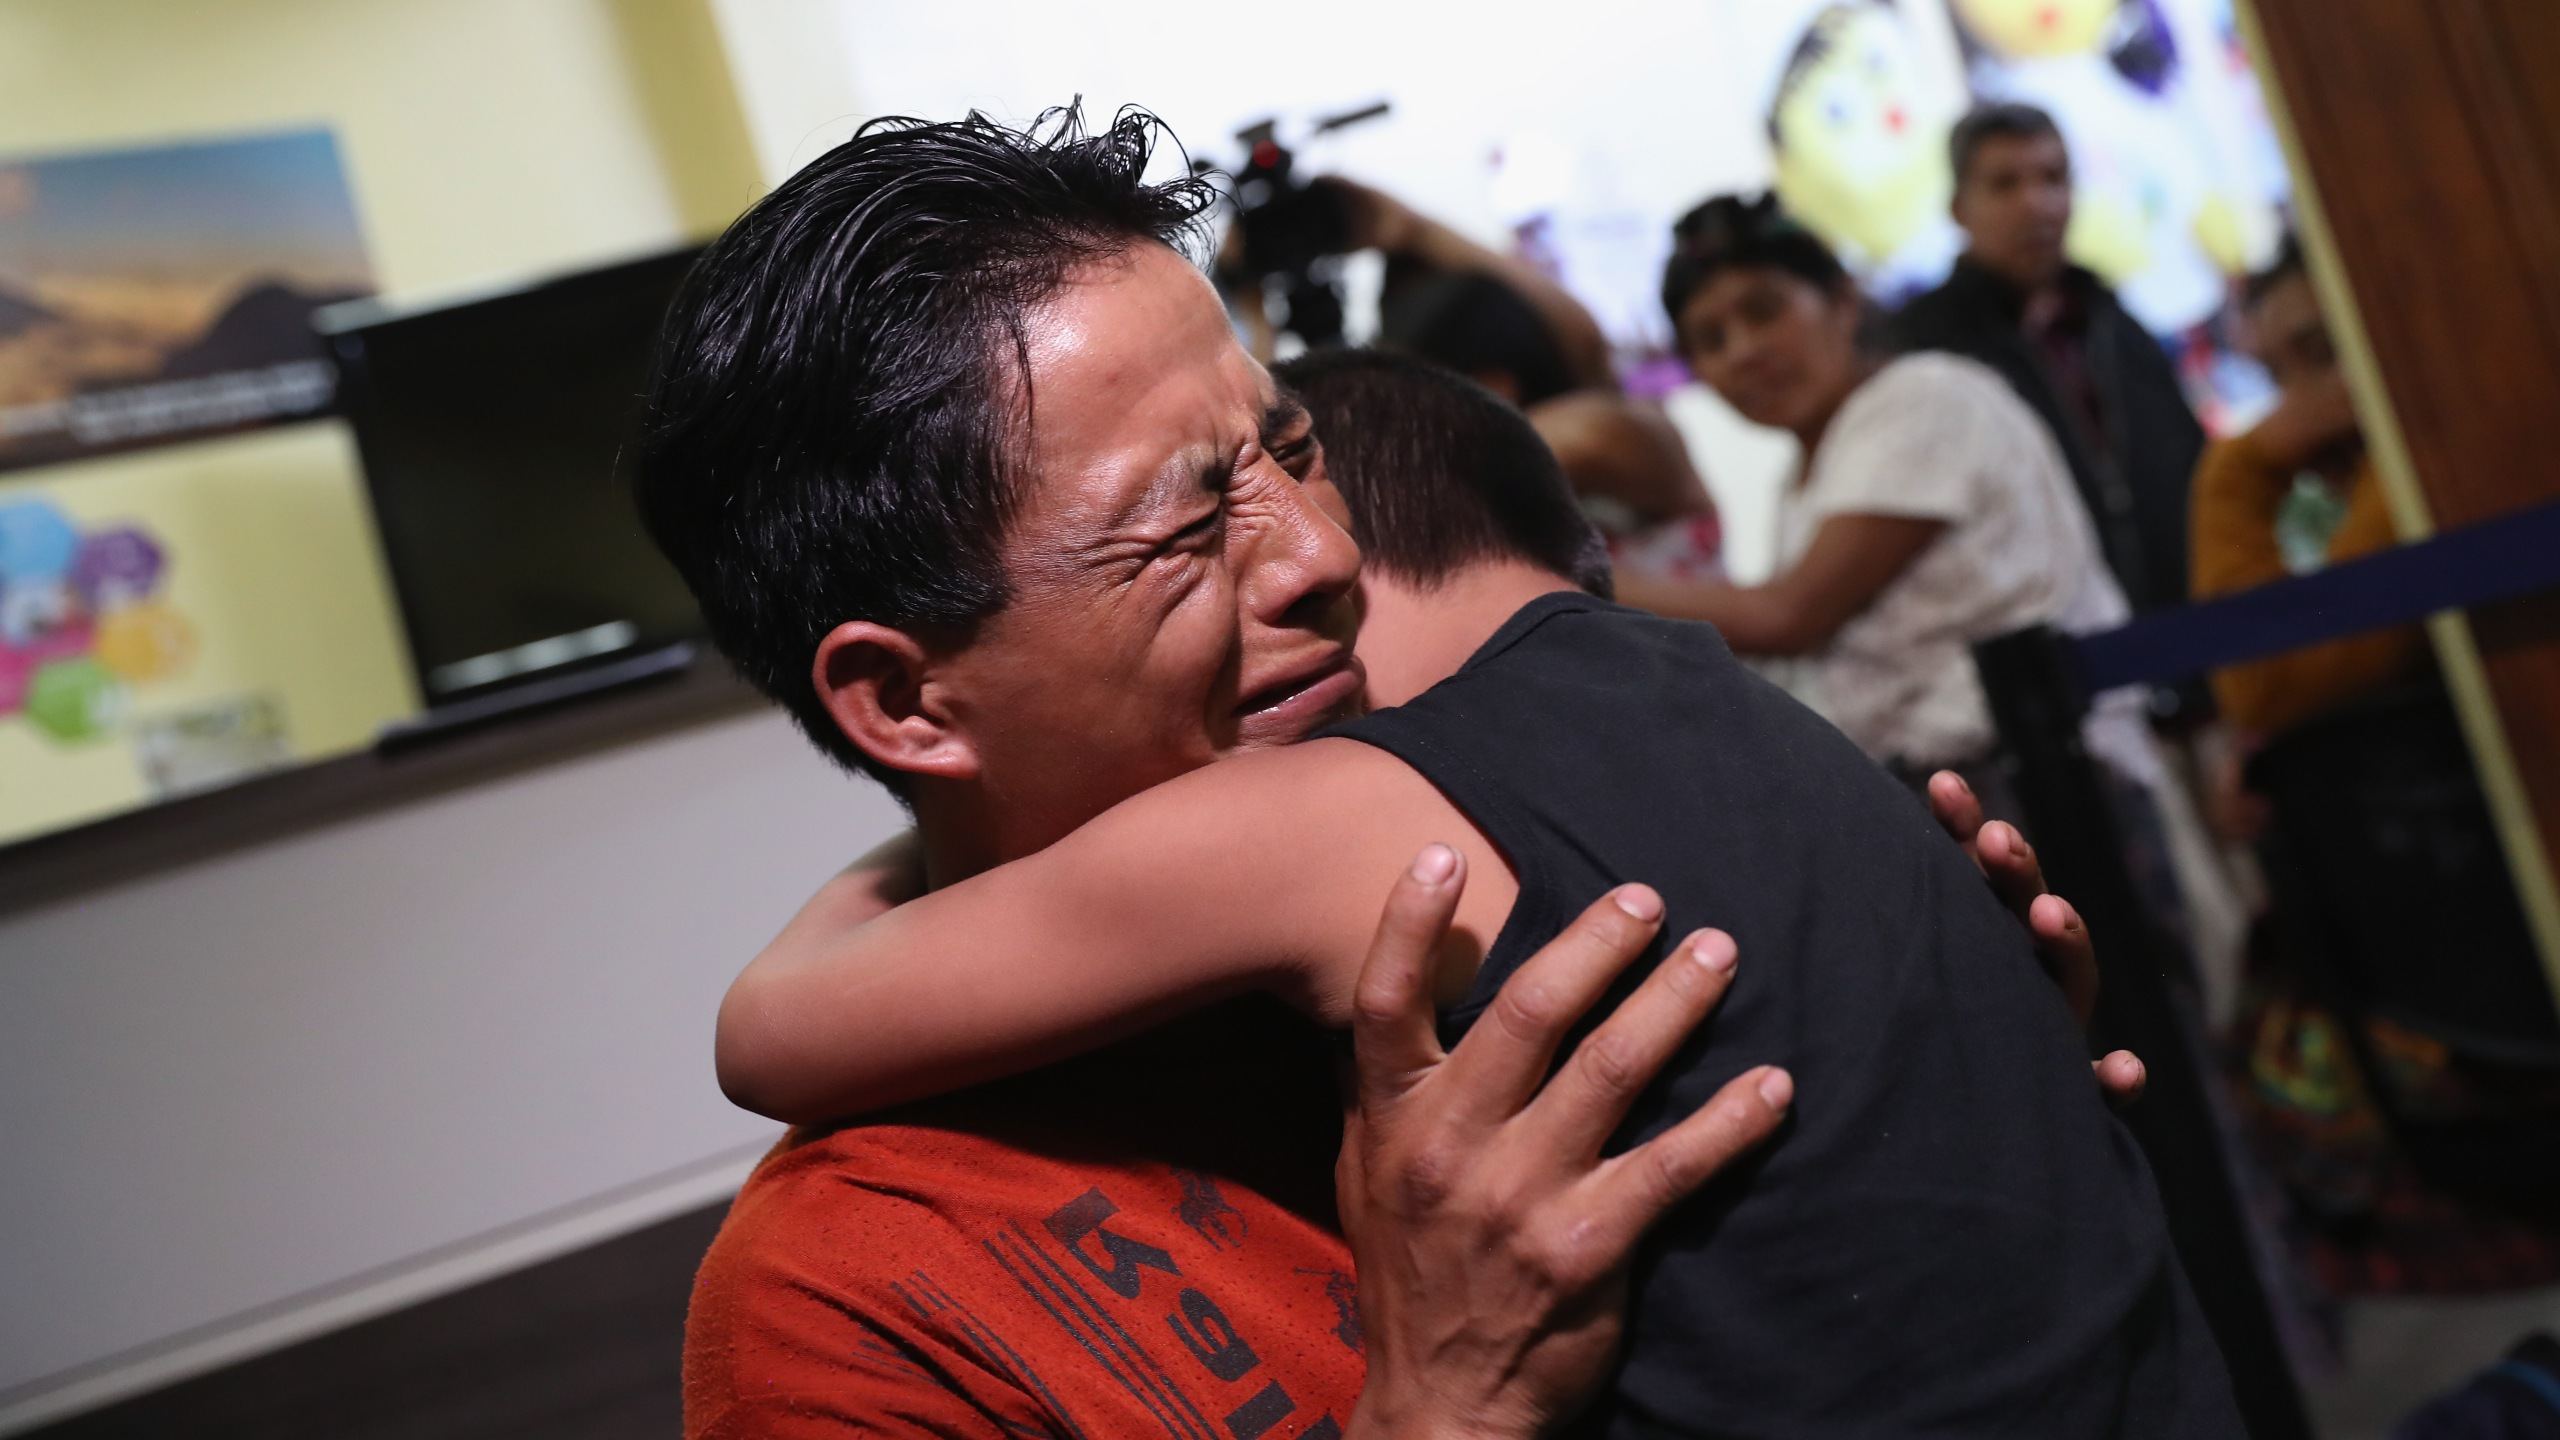 An emotional father embraces his son for the first time in months on Aug. 7, 2018, in Guatemala City, Guatemala. (Credit: John Moore / Getty Images)